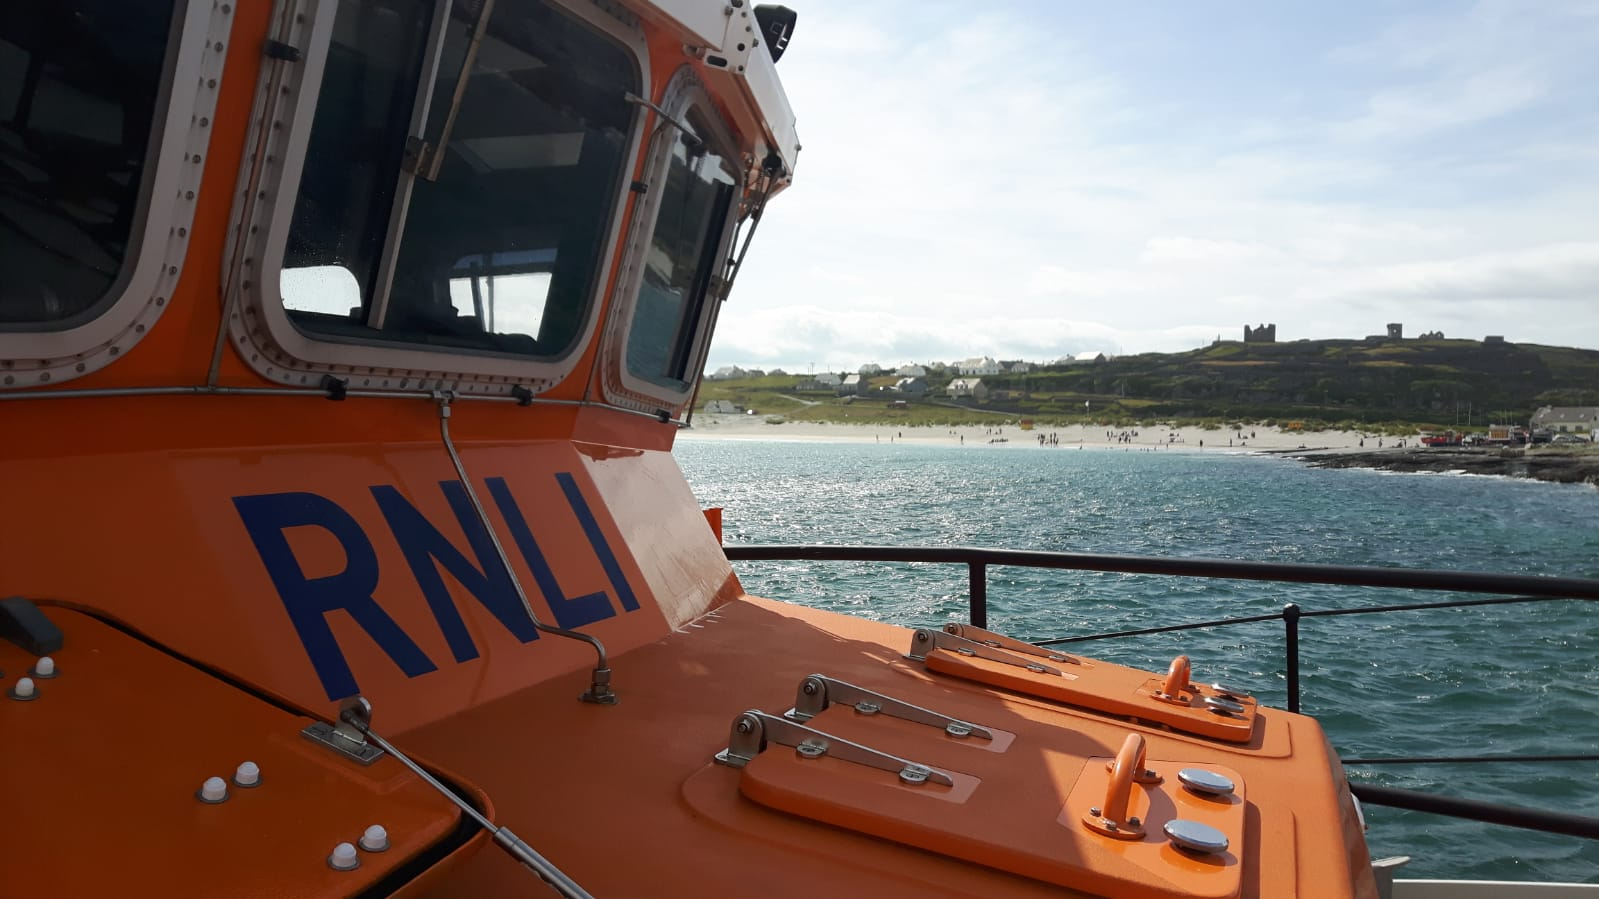 Aran Islands Lifeboat rescues three people stranded on a jet ski